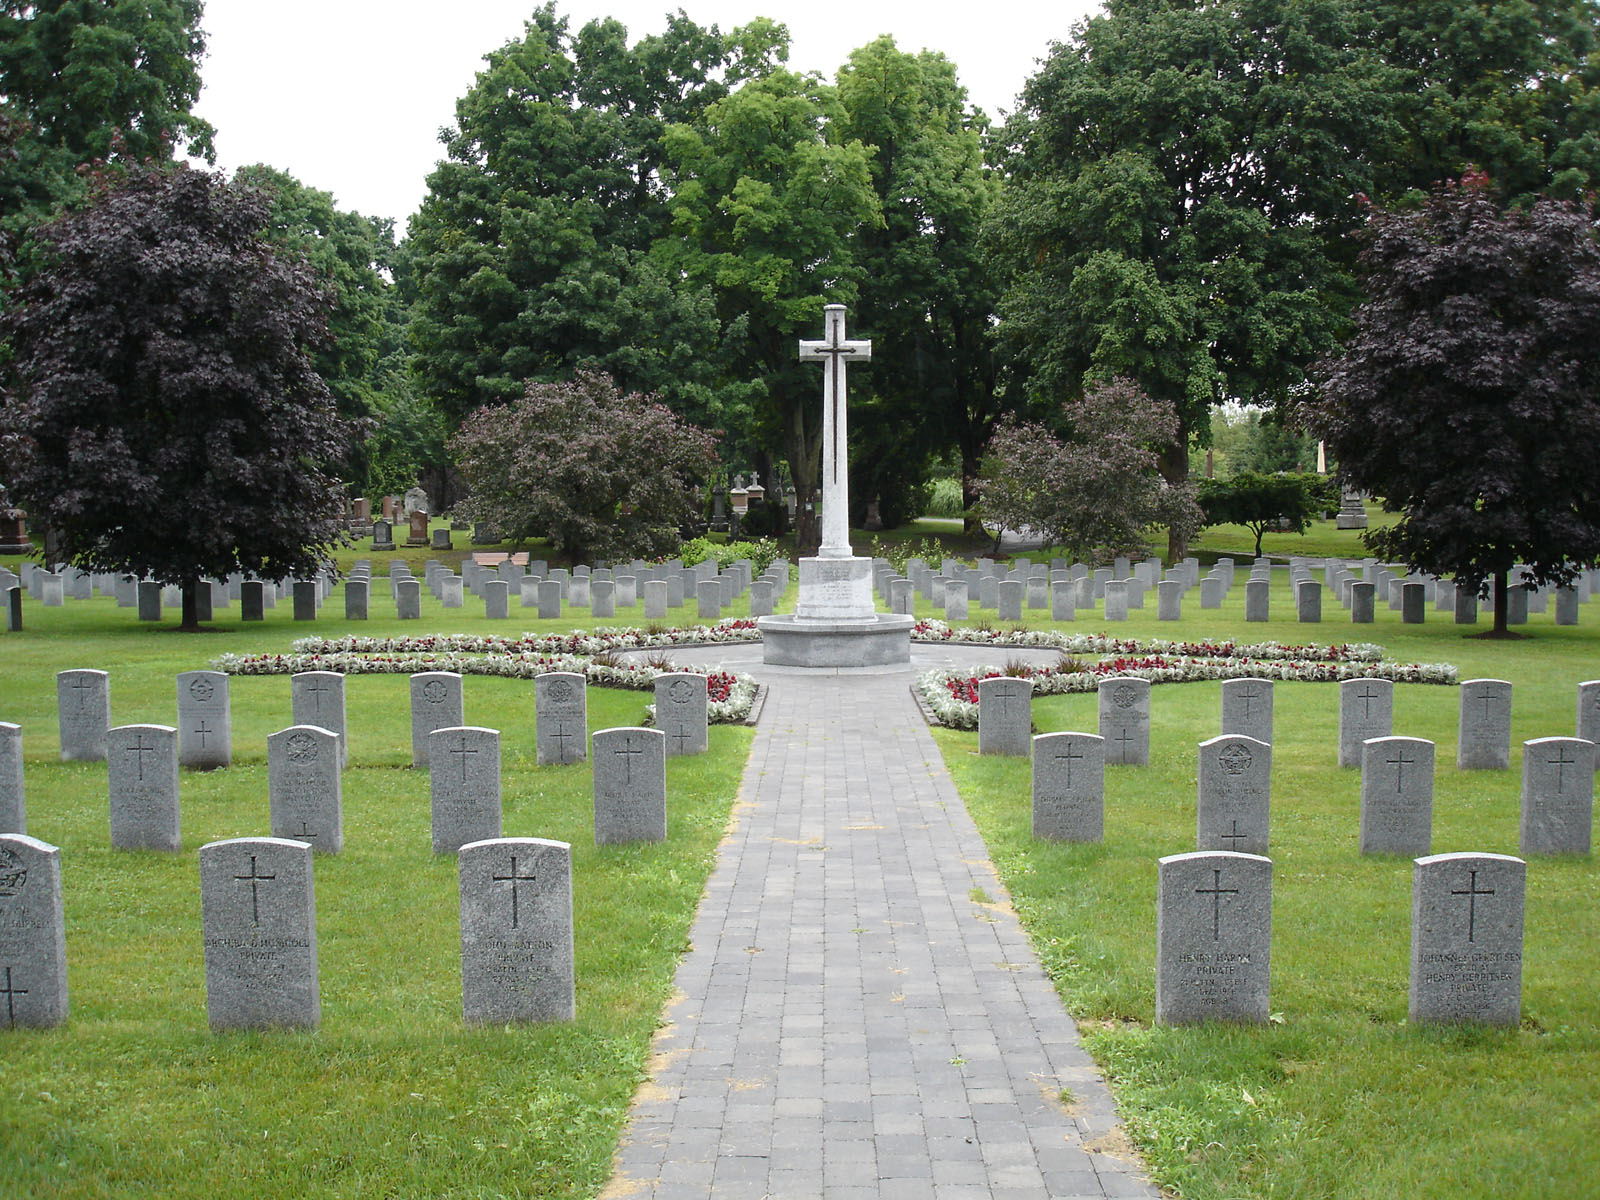 The National Military Cemetery